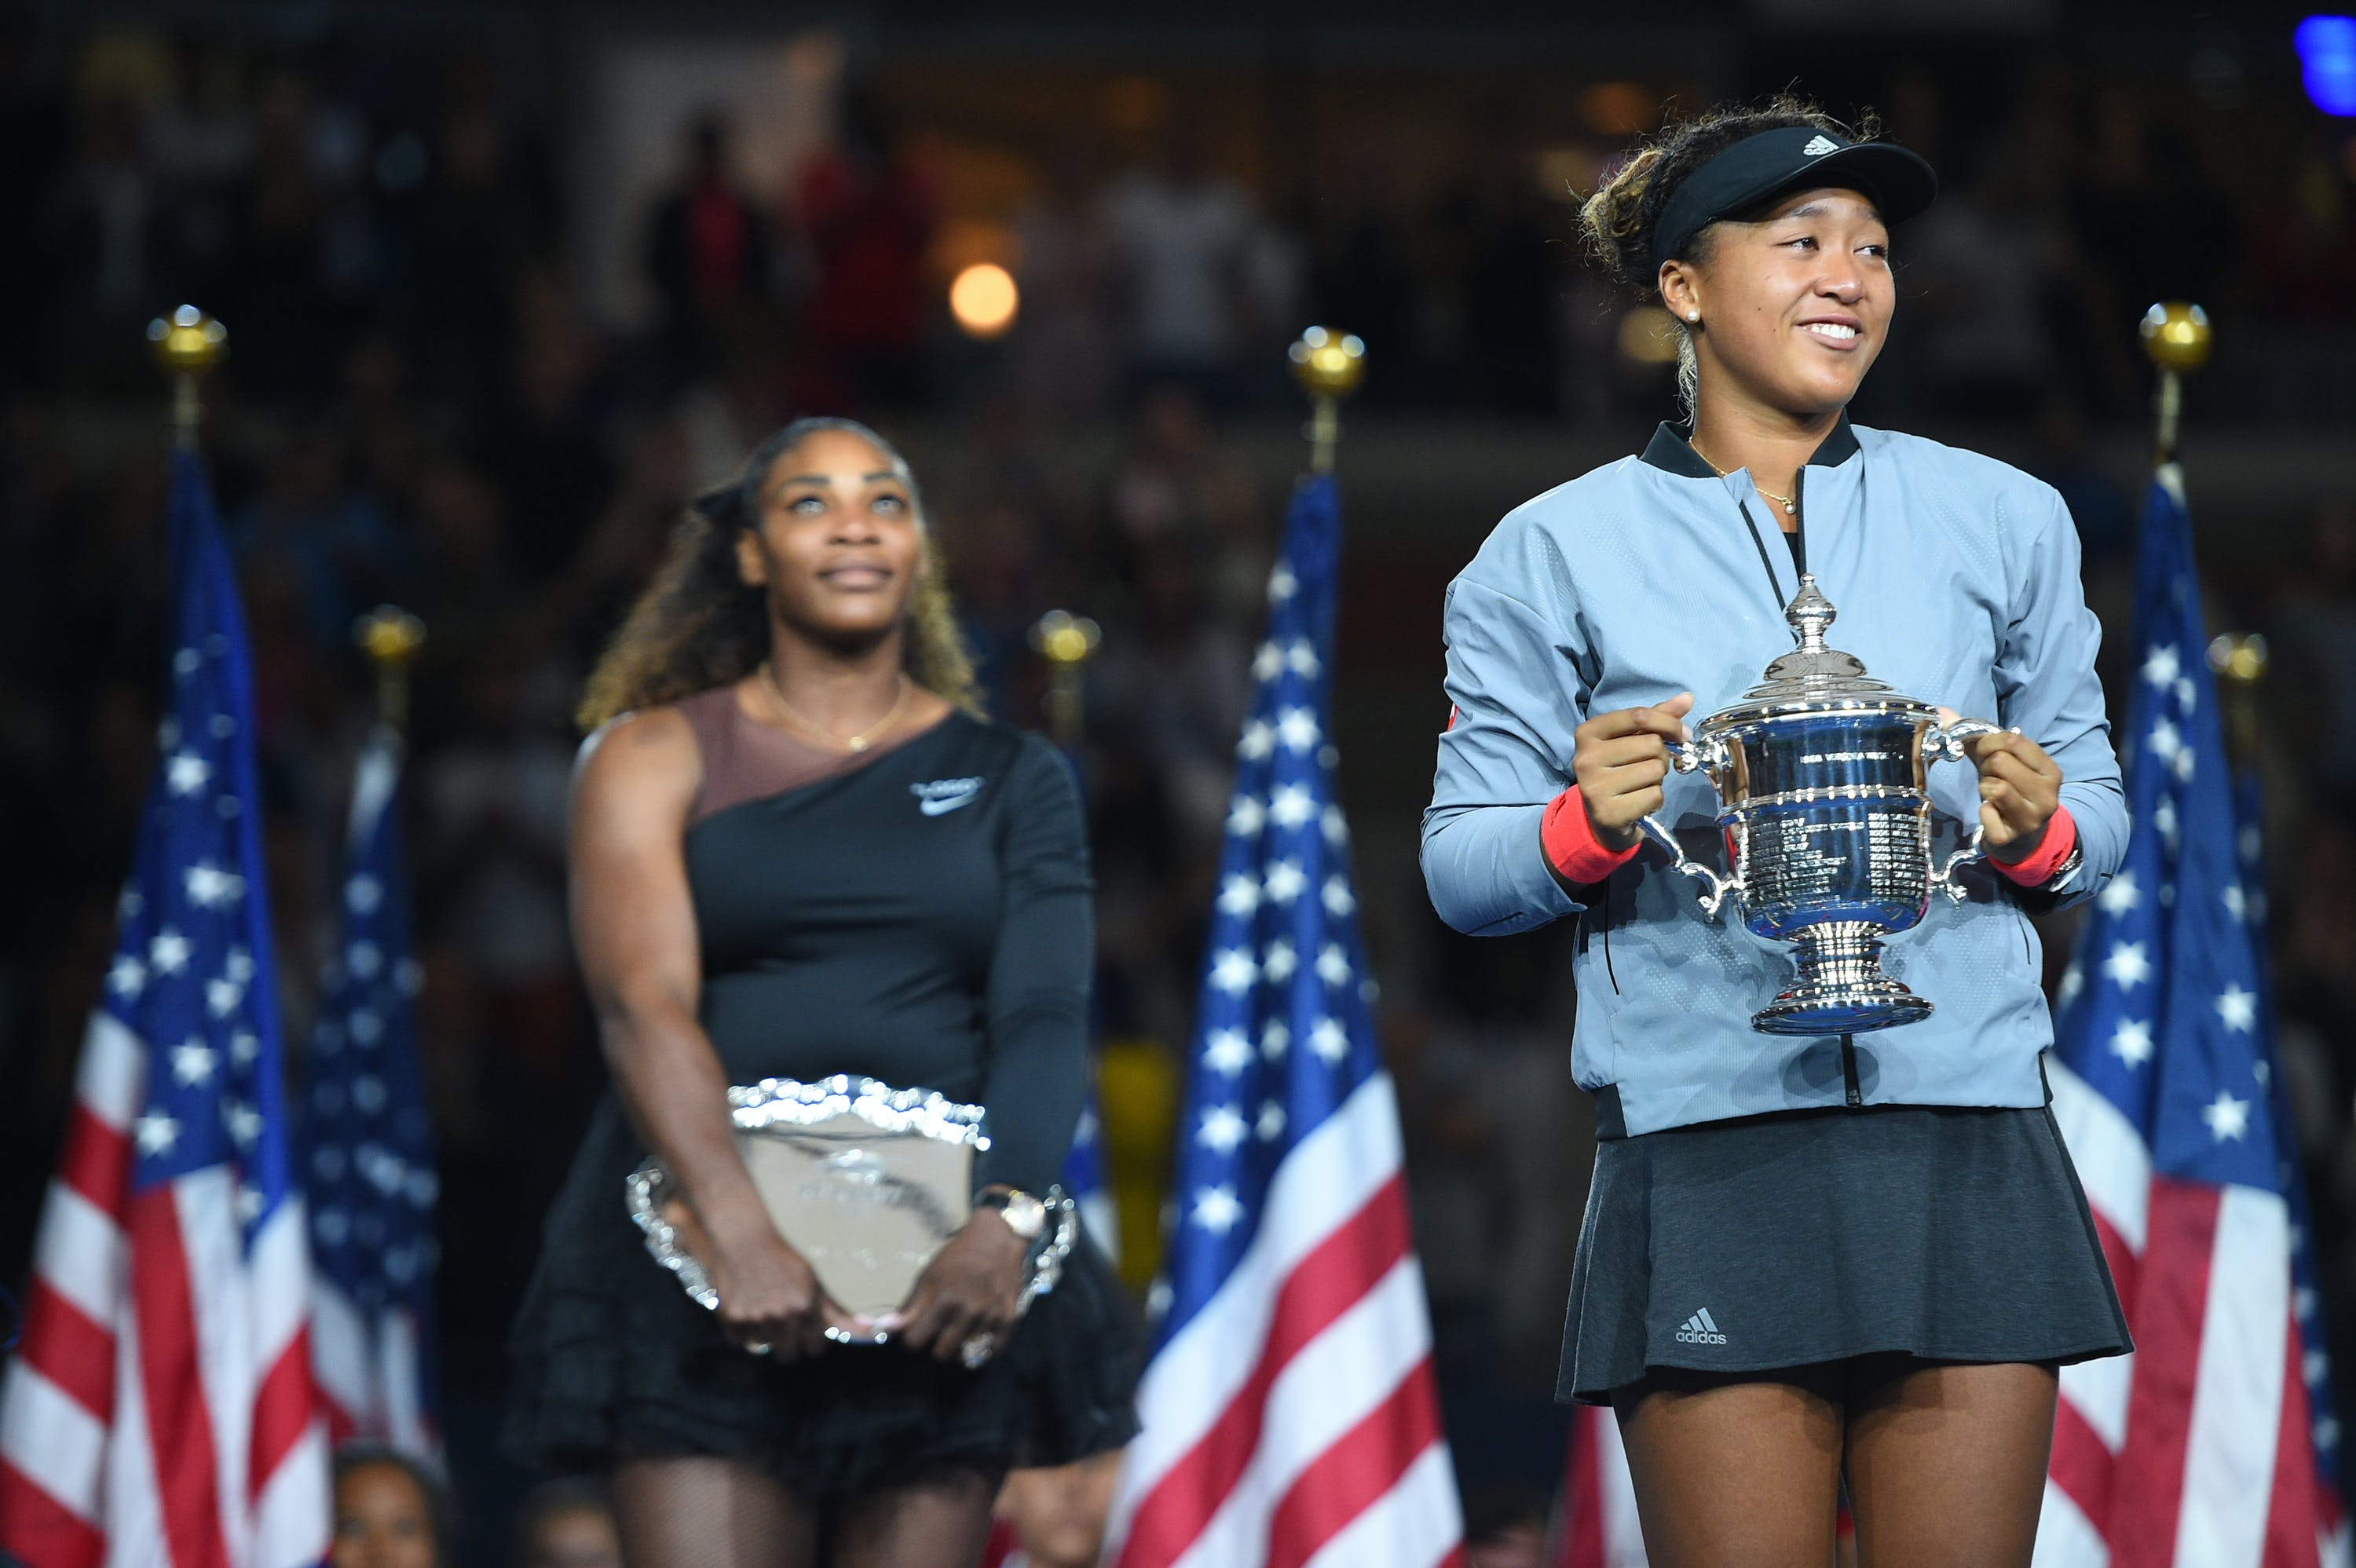 Naomi Osaka wins her maiden Grand Slam title at the 2018 US Open